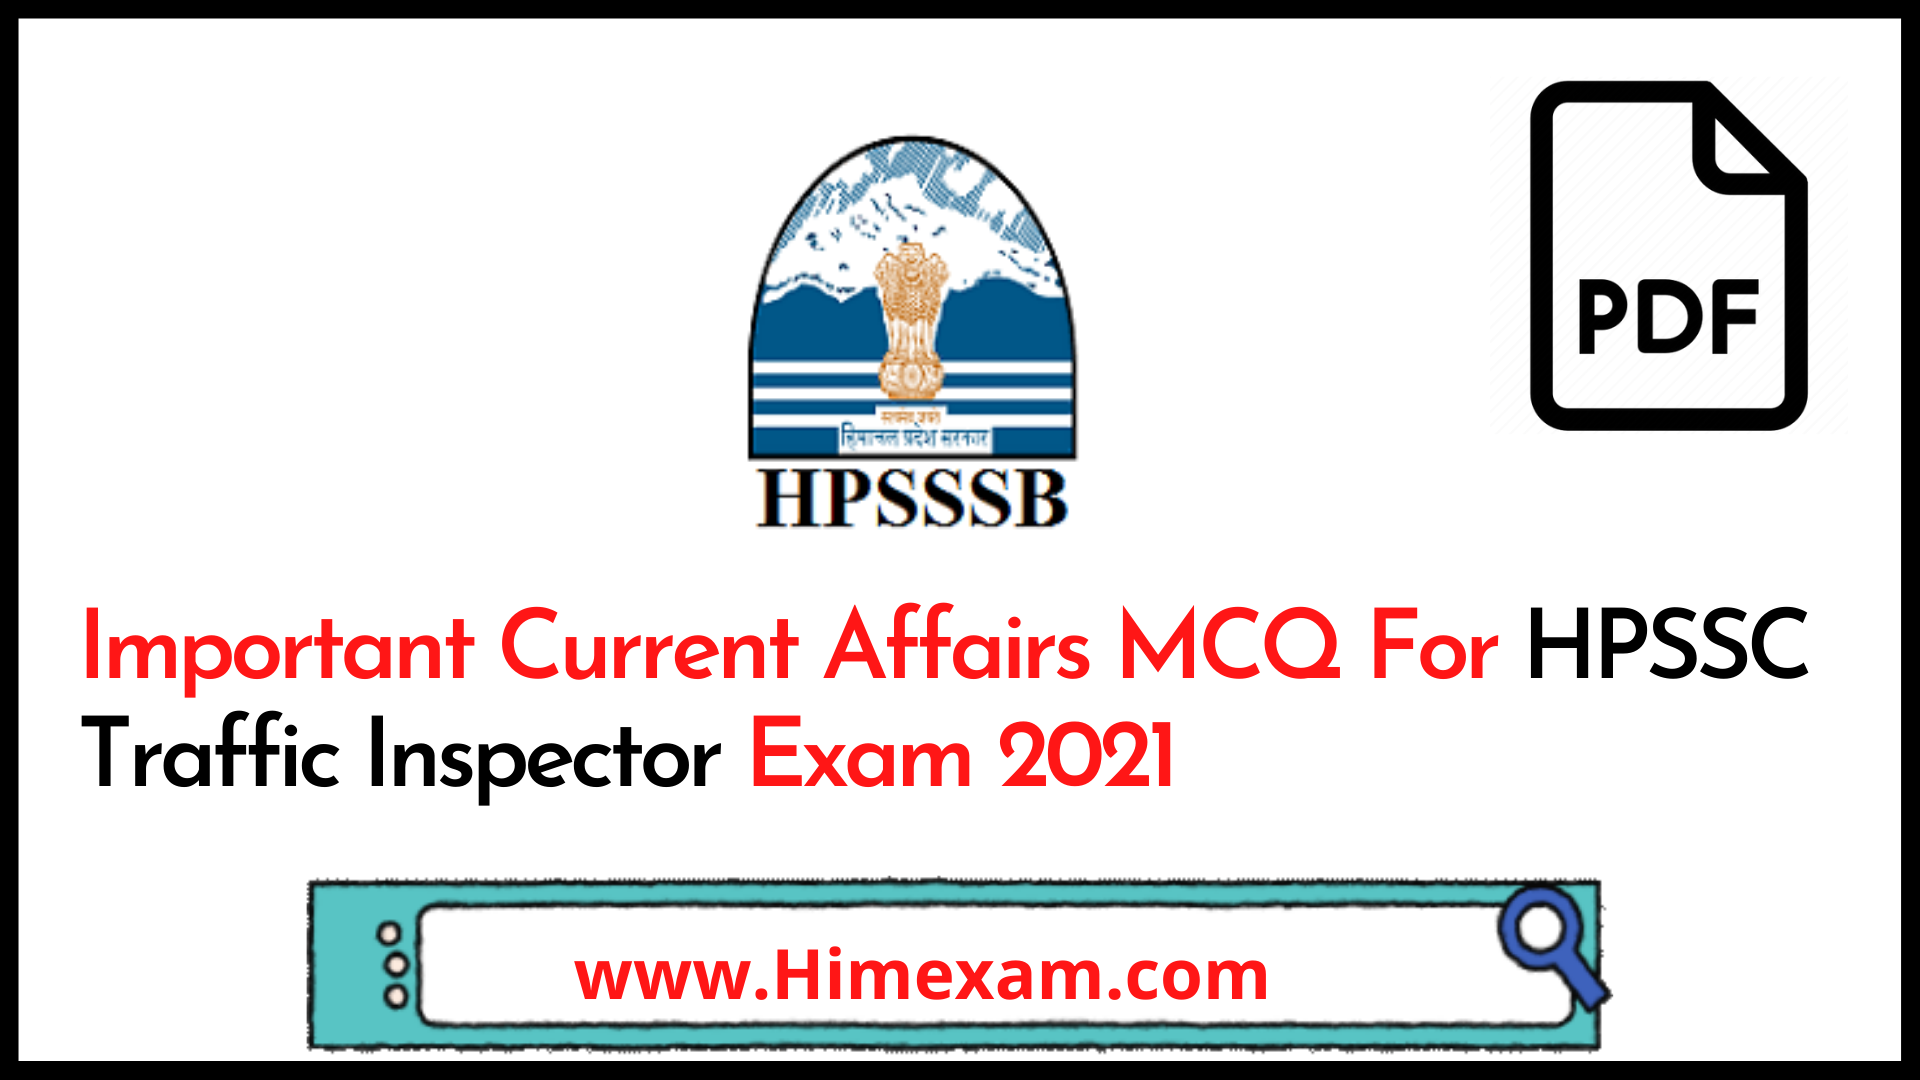 Important Current Affairs MCQ For HPSSC Traffic Inspector Exam 2021